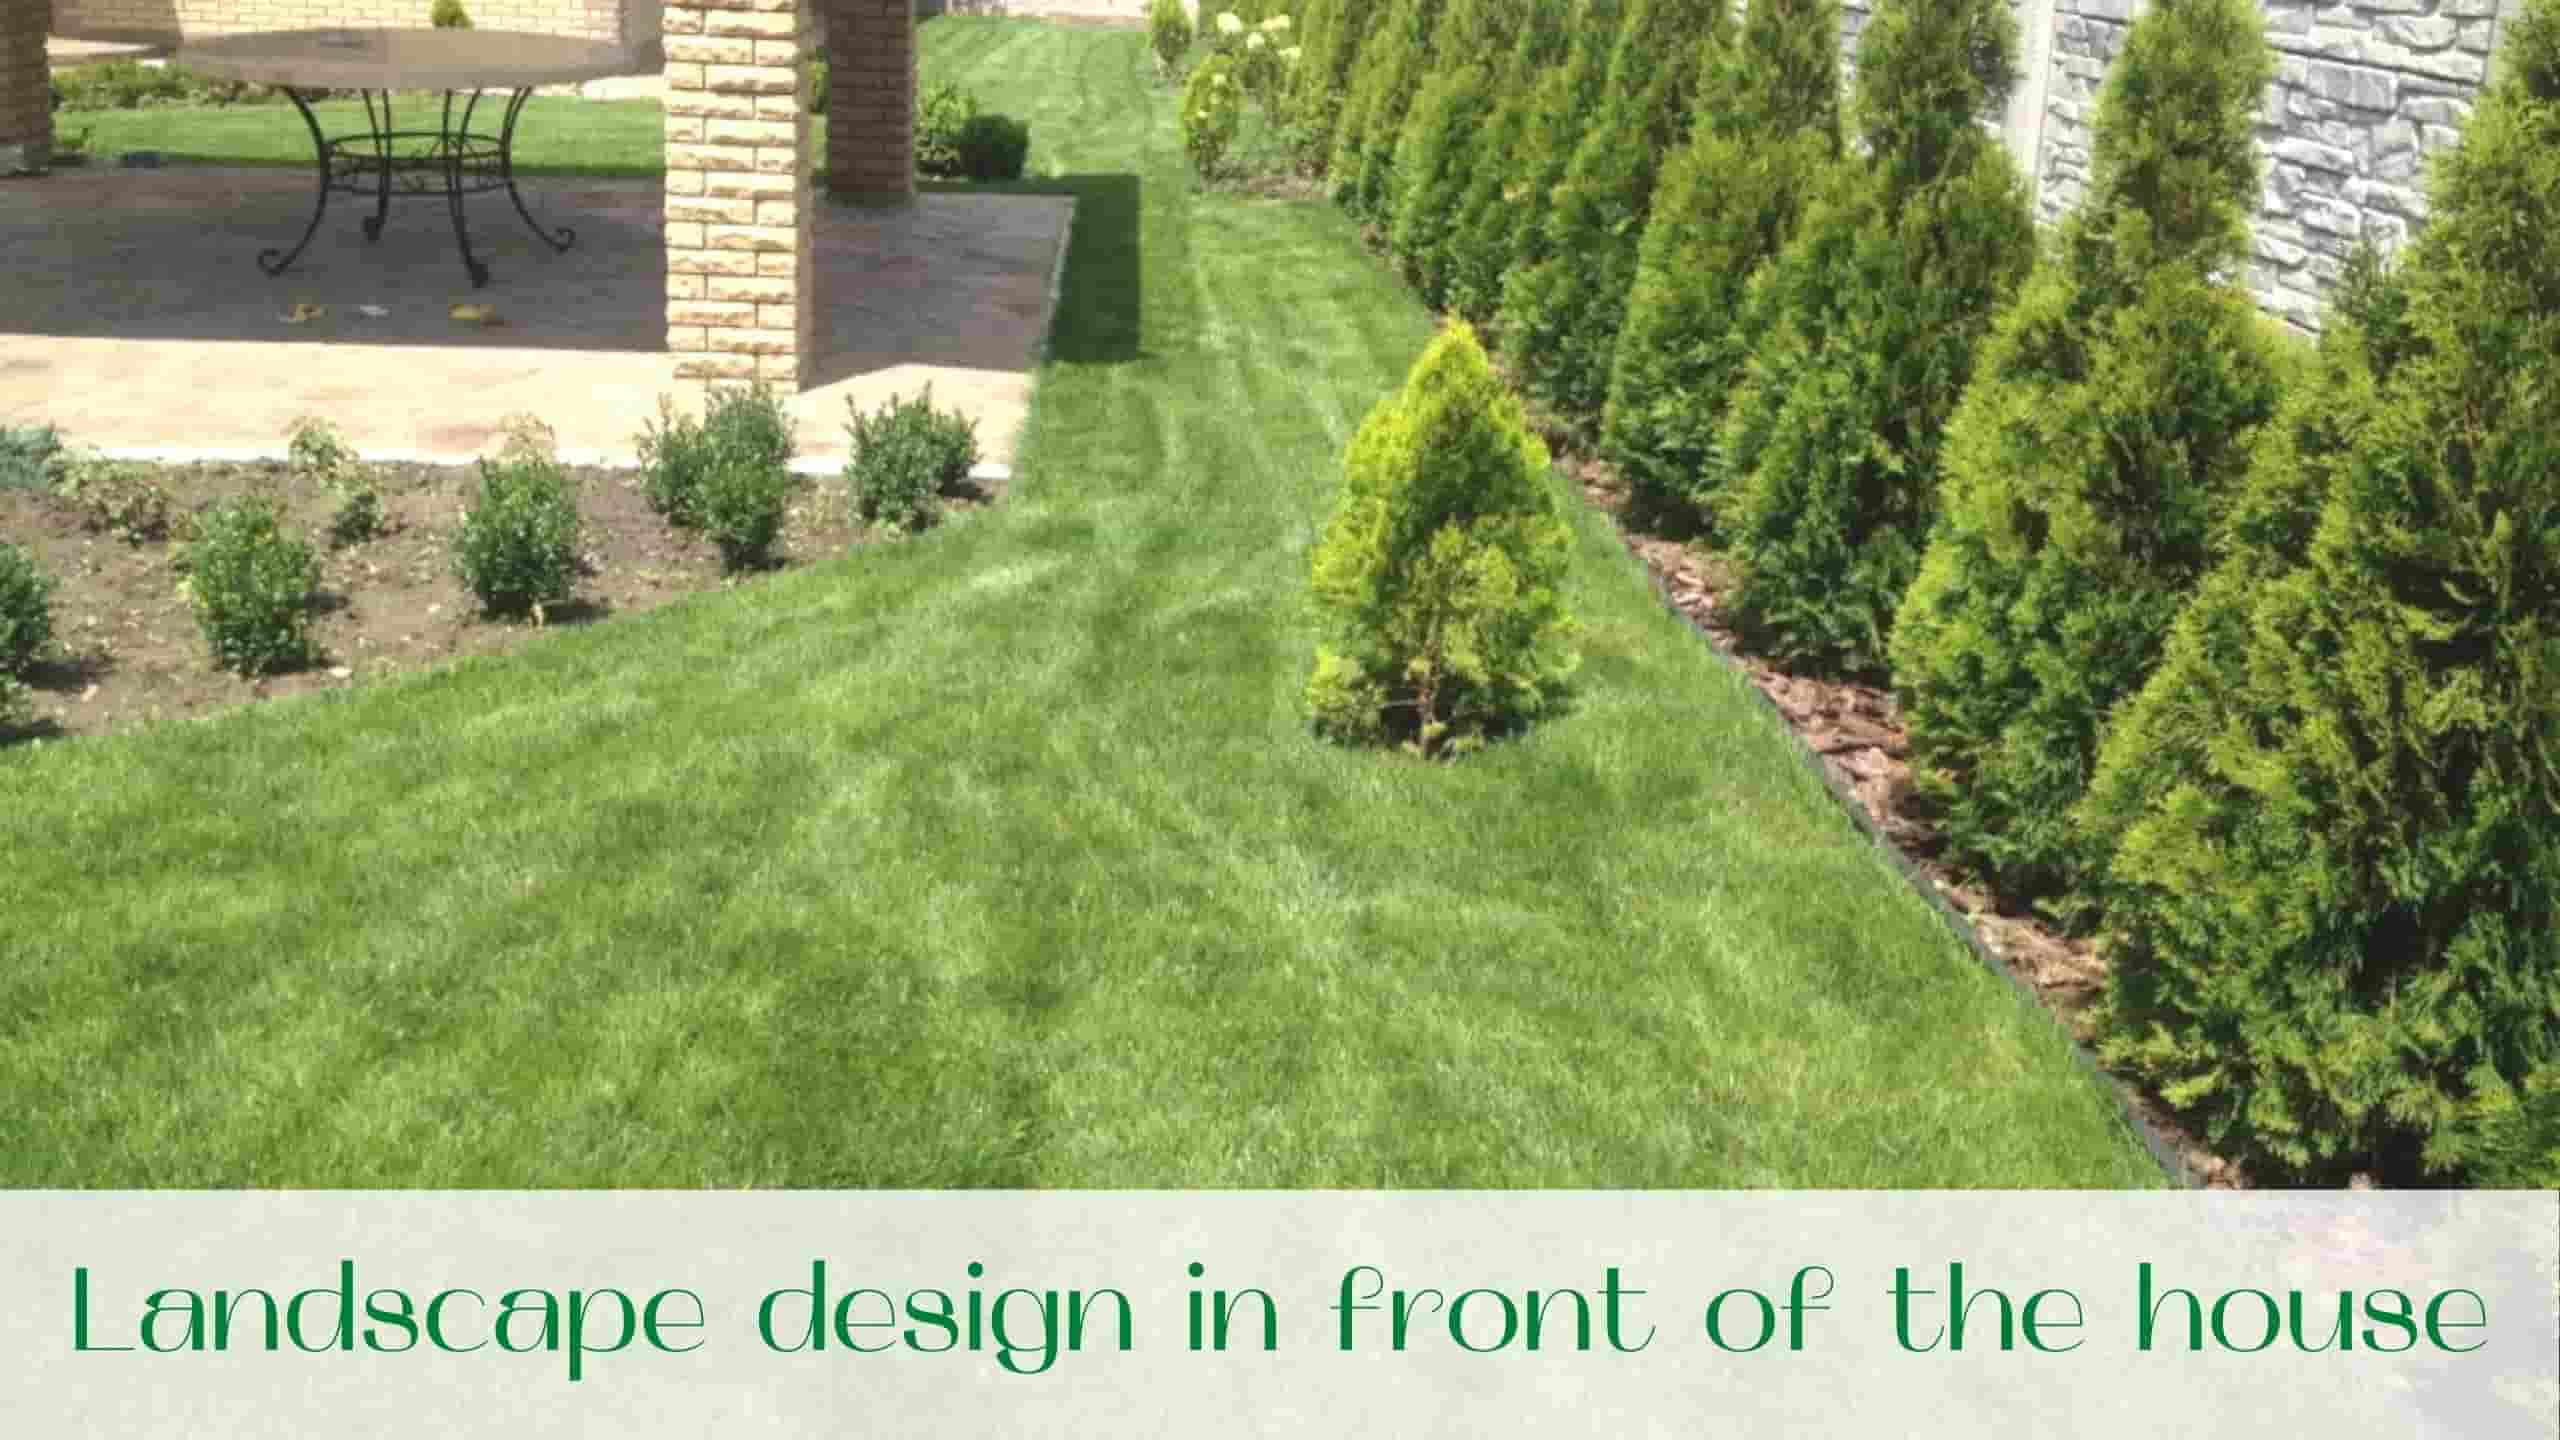 image-landscape-design-in-front-of-the-house